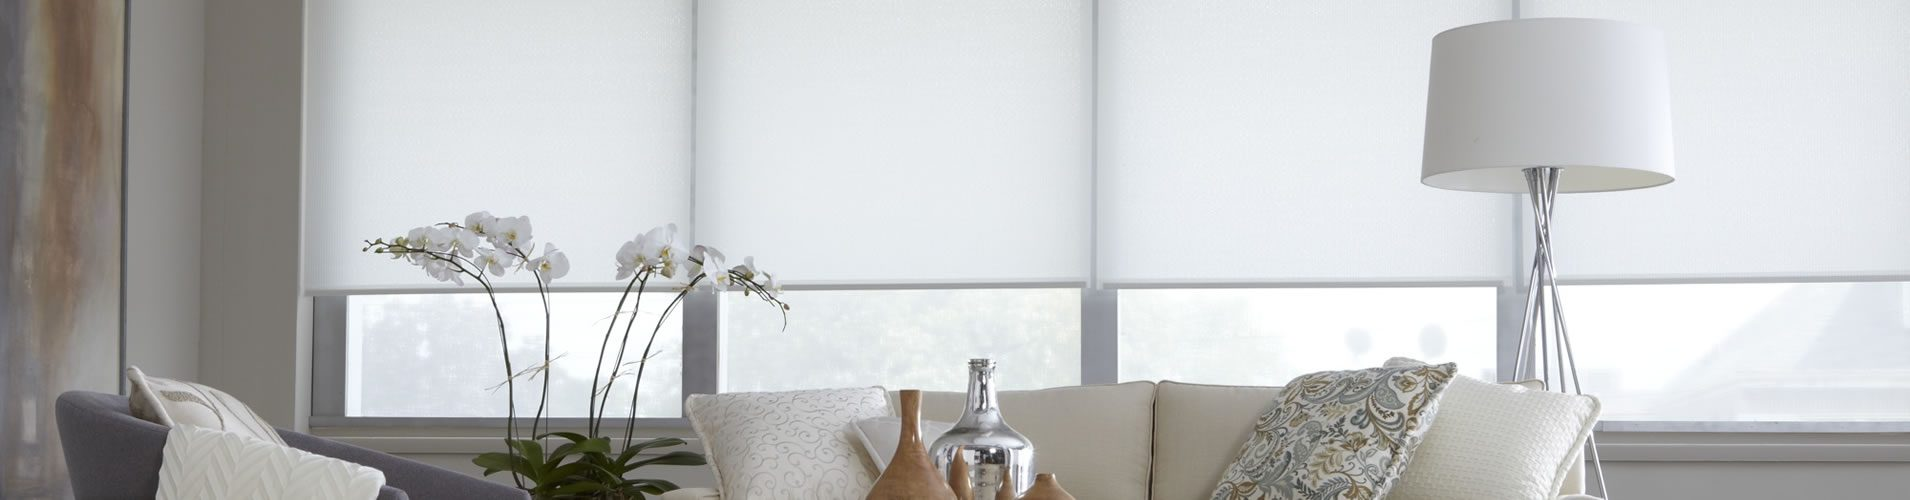 Dallas Tx Roller Shades Hunter Douglas Designer Shades